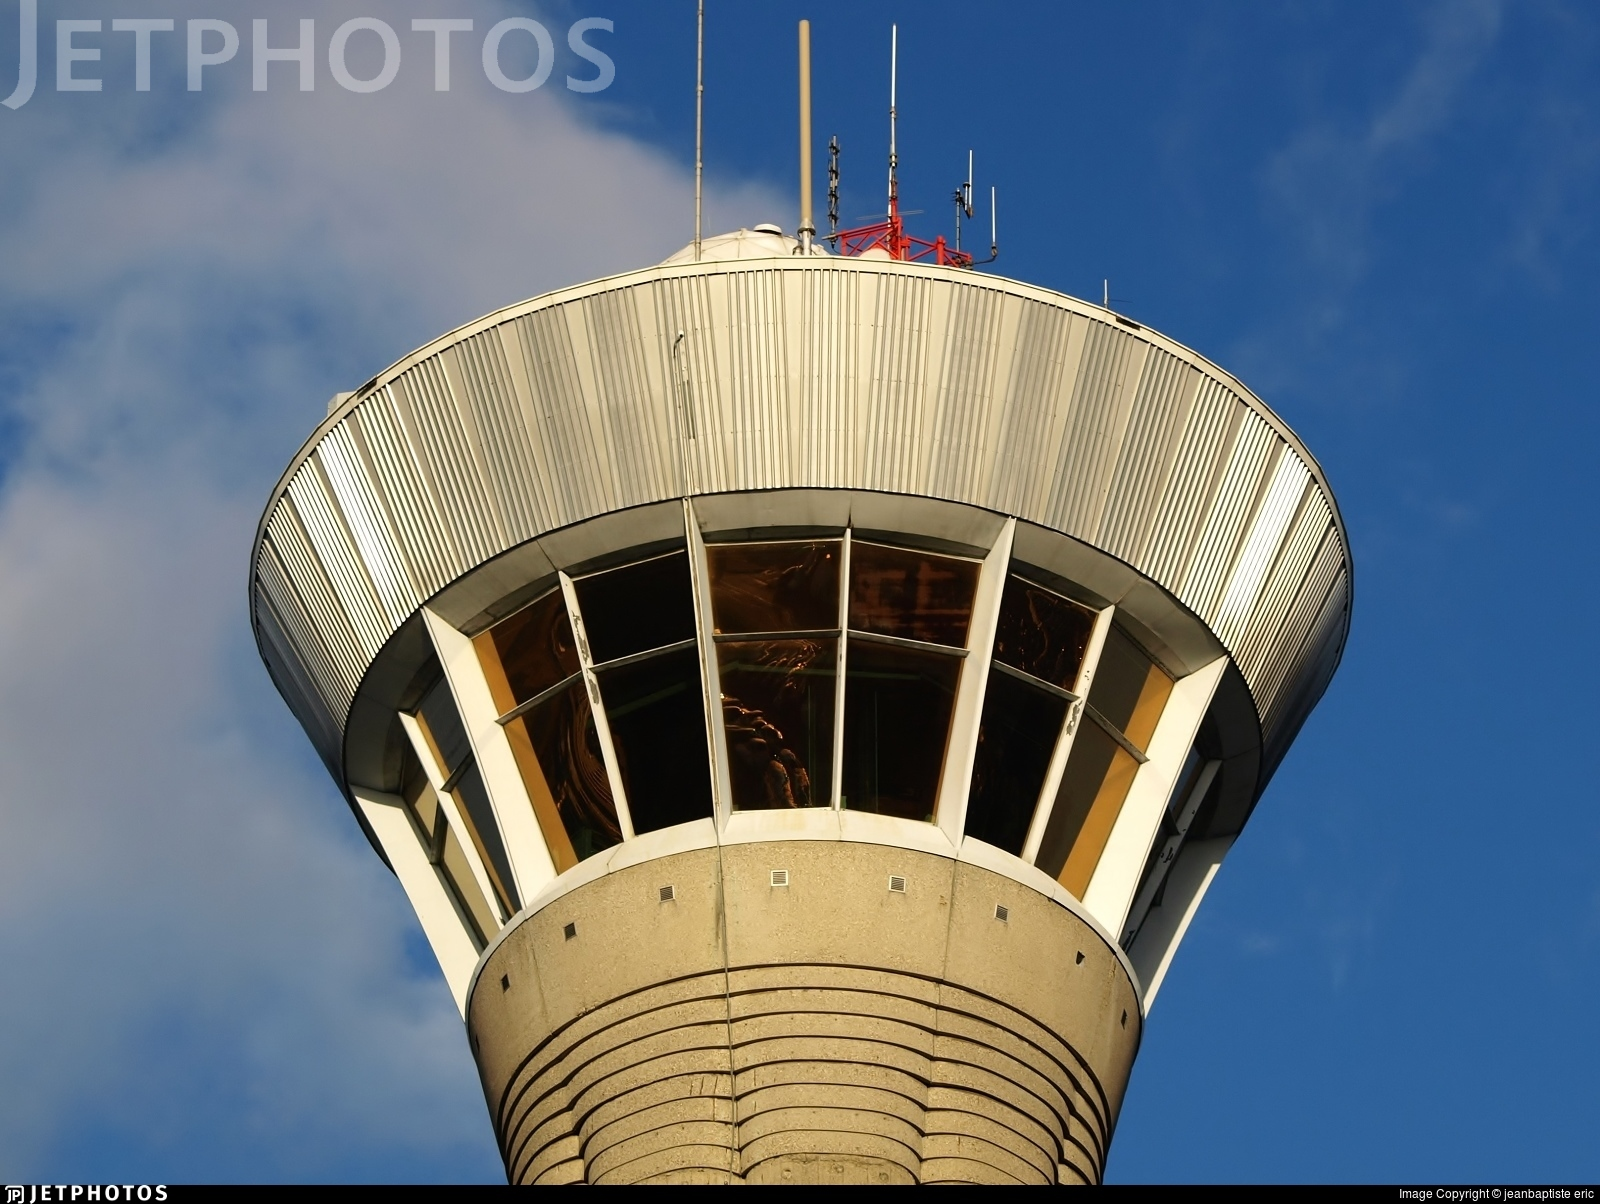 LFPG - Airport - Control Tower